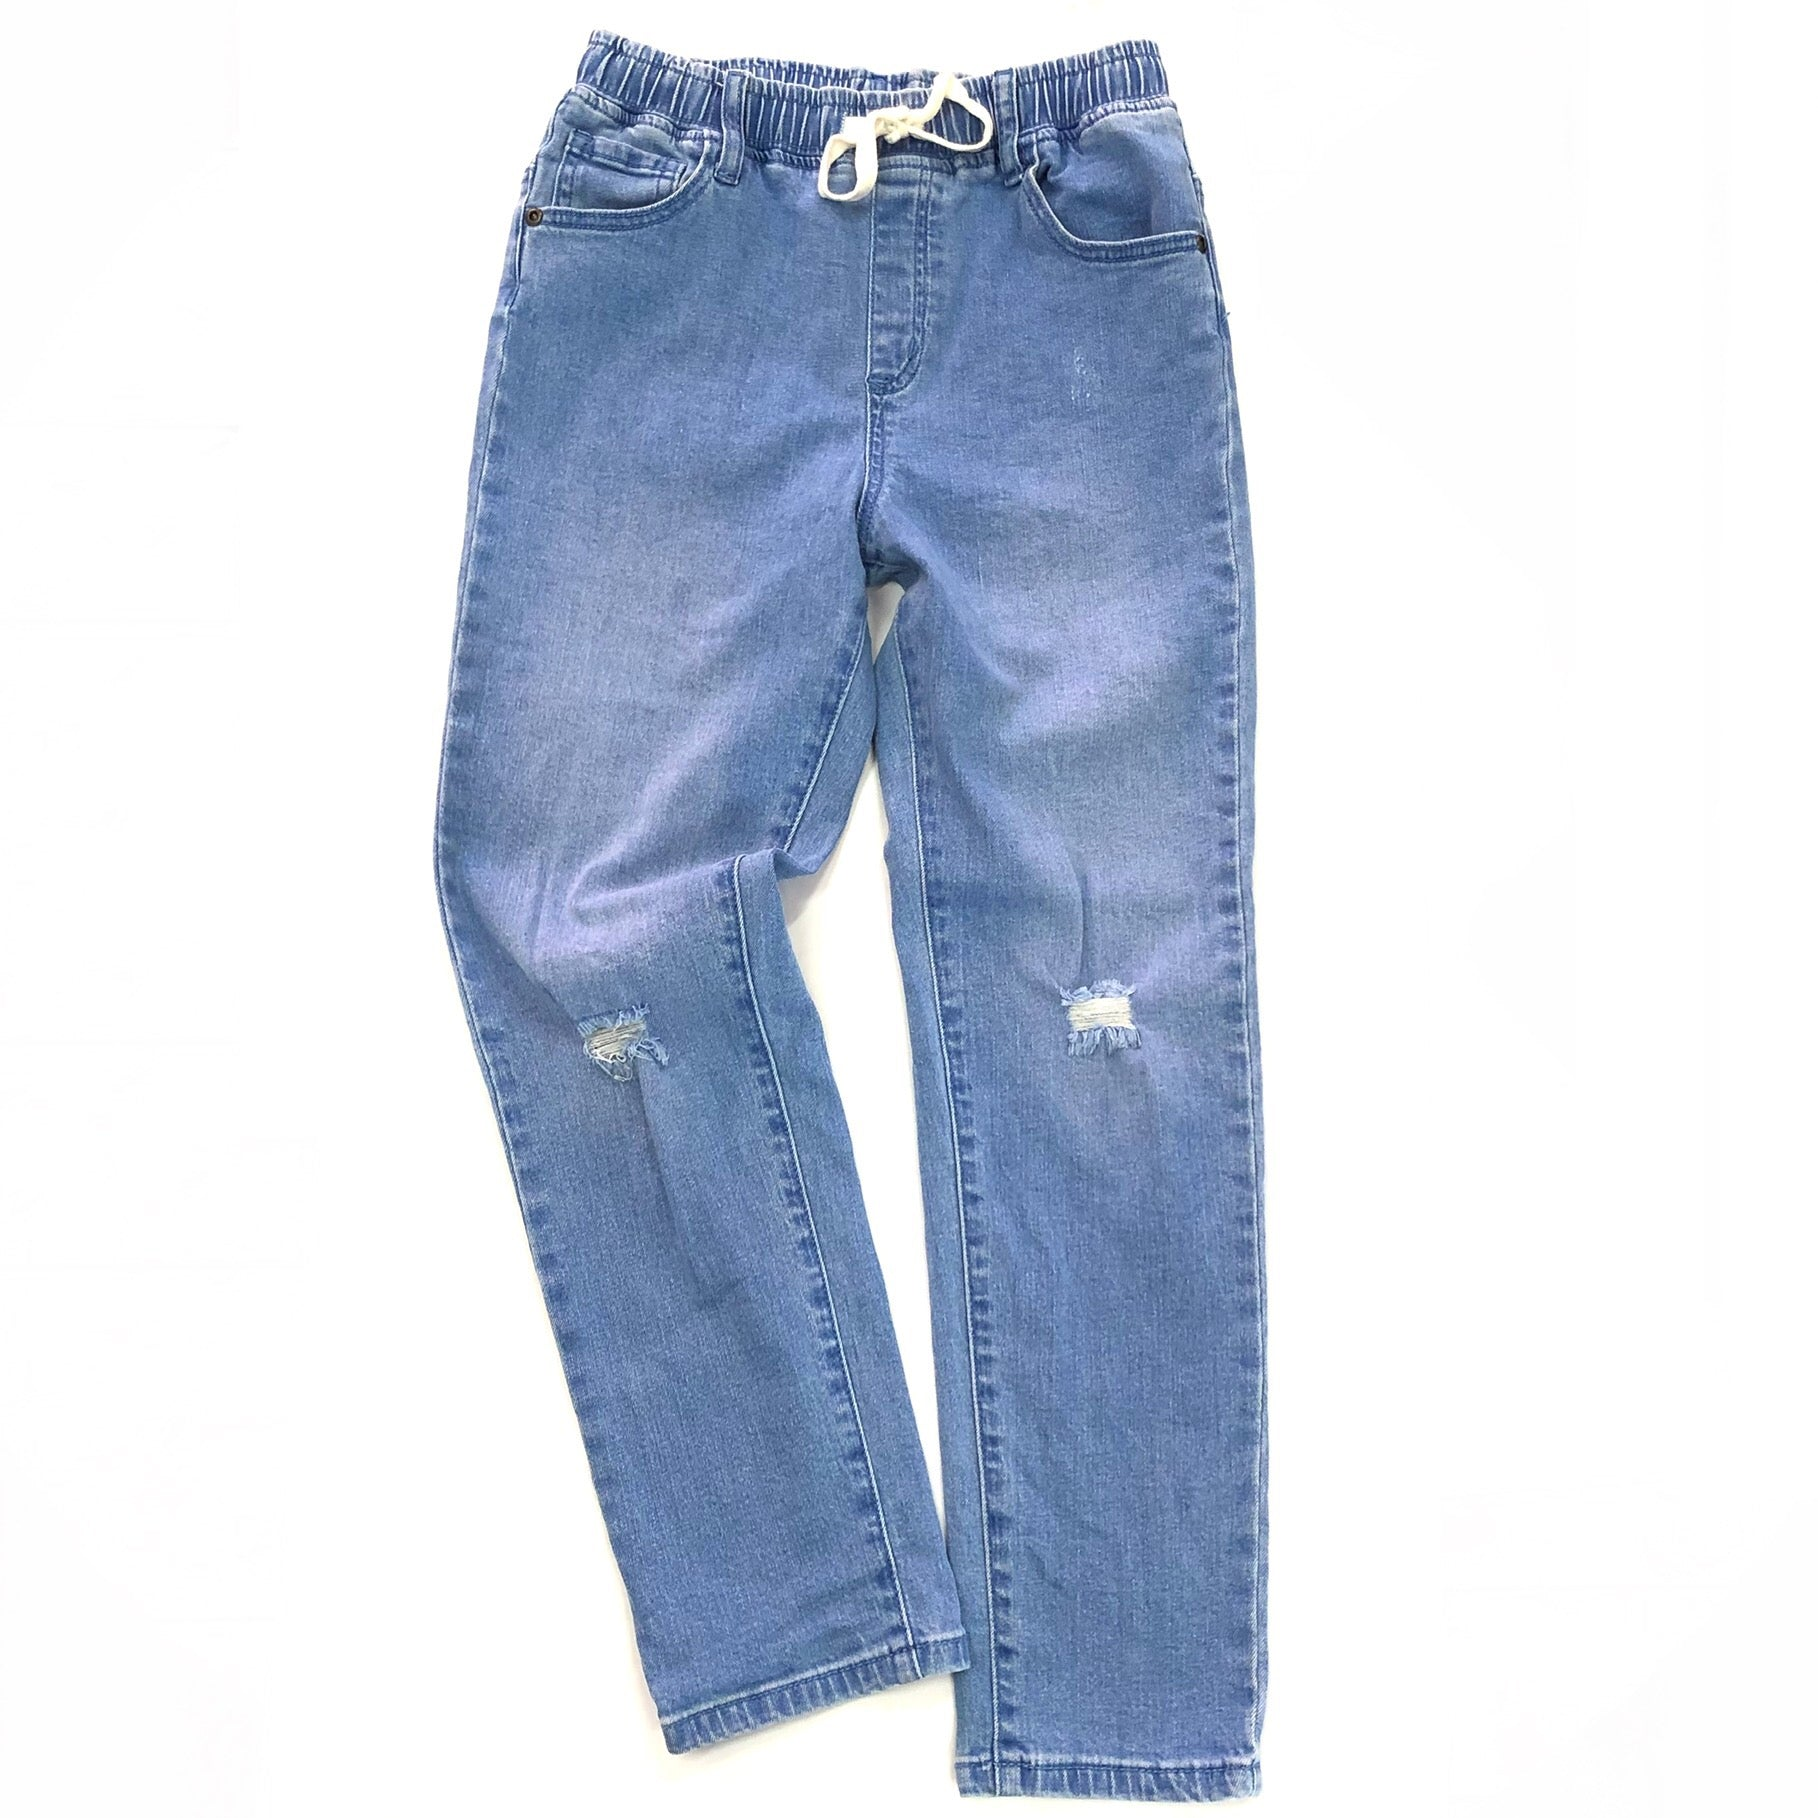 Boys Size 10 Seed jeans